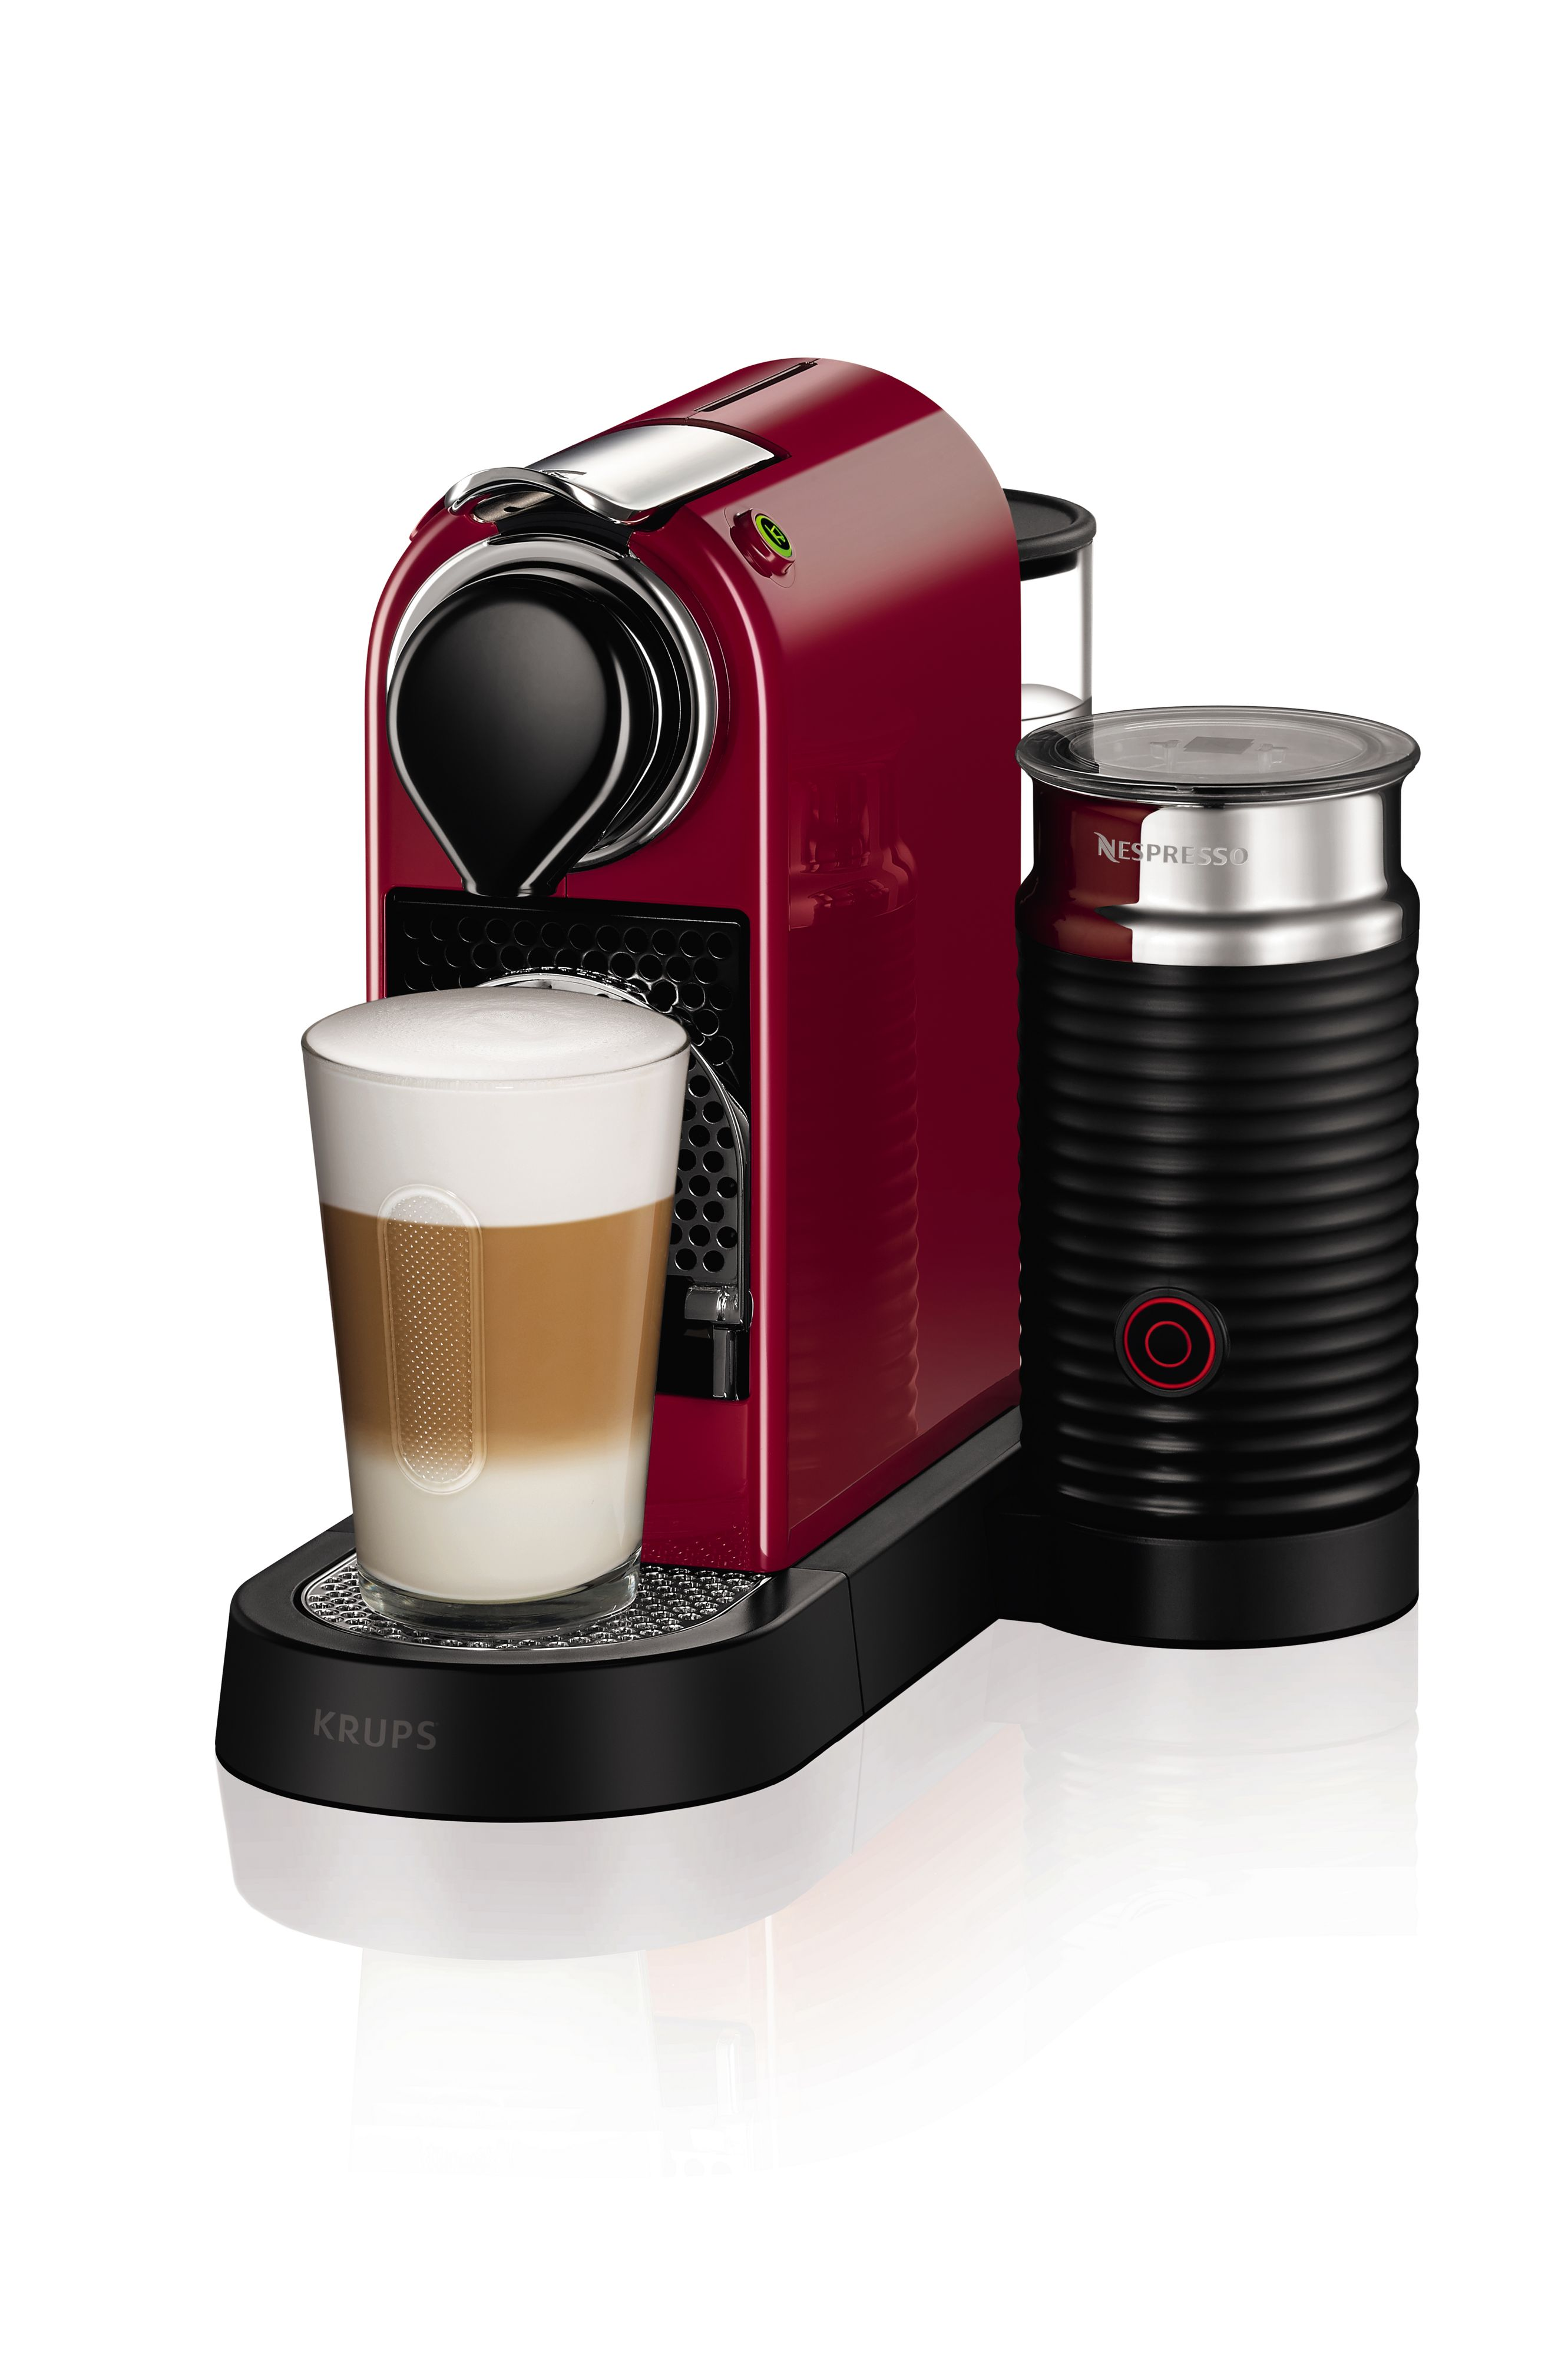 Krups Nespresso Citiz&Milk Machine 2016 Design Red